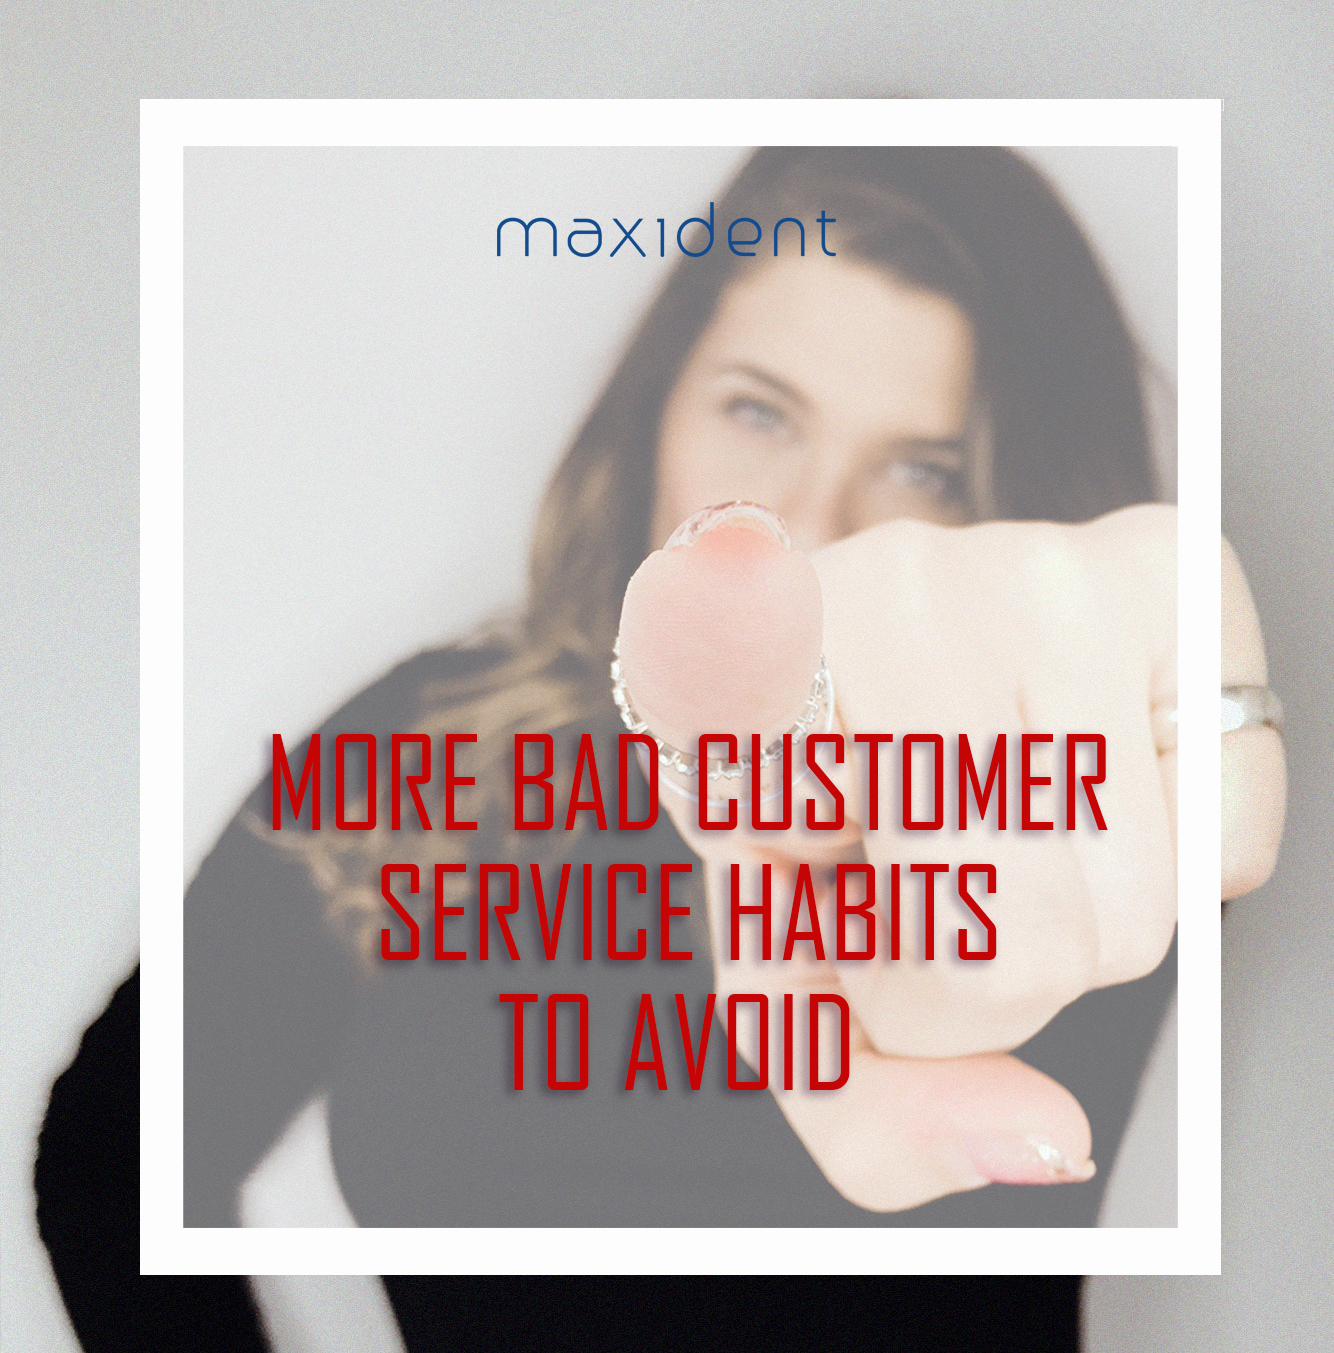 More Bad Customer Service Habits to Avoid